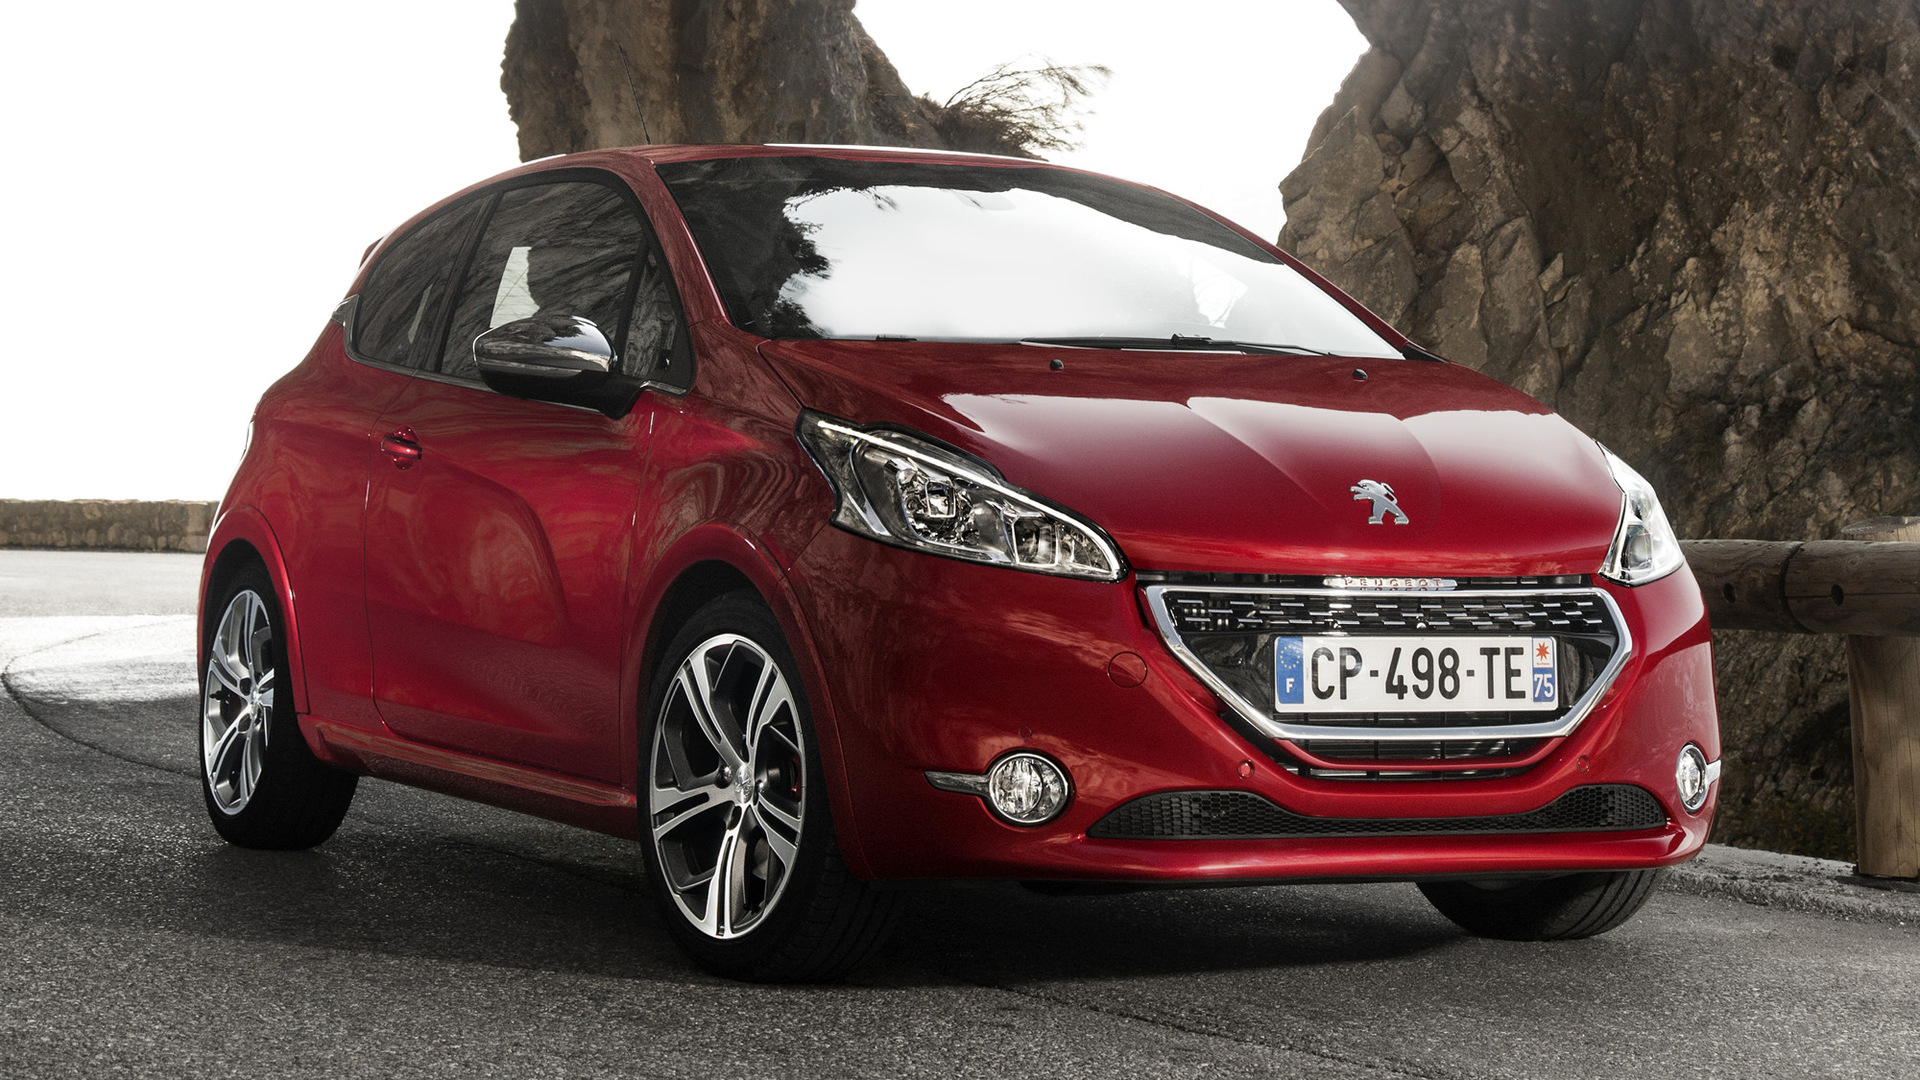 peugeot 208 gti 2012 wallpapers and hd images car pixel. Black Bedroom Furniture Sets. Home Design Ideas